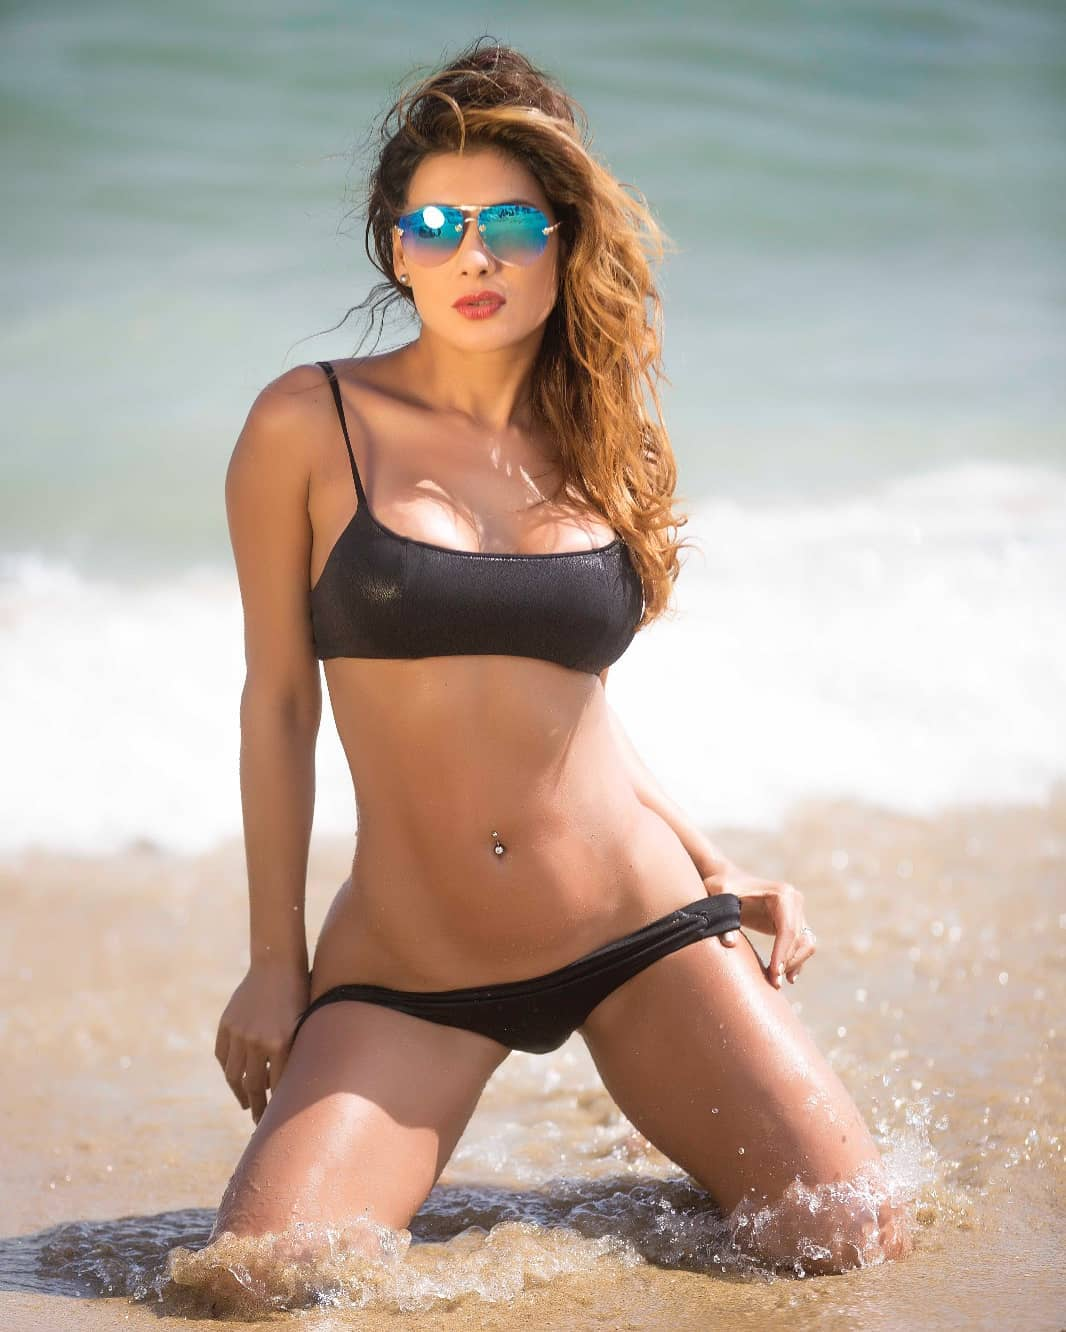 Vivi Castrillon Hot Bikini Galleries - Vivi Castrillon Hot Bikini Galleries